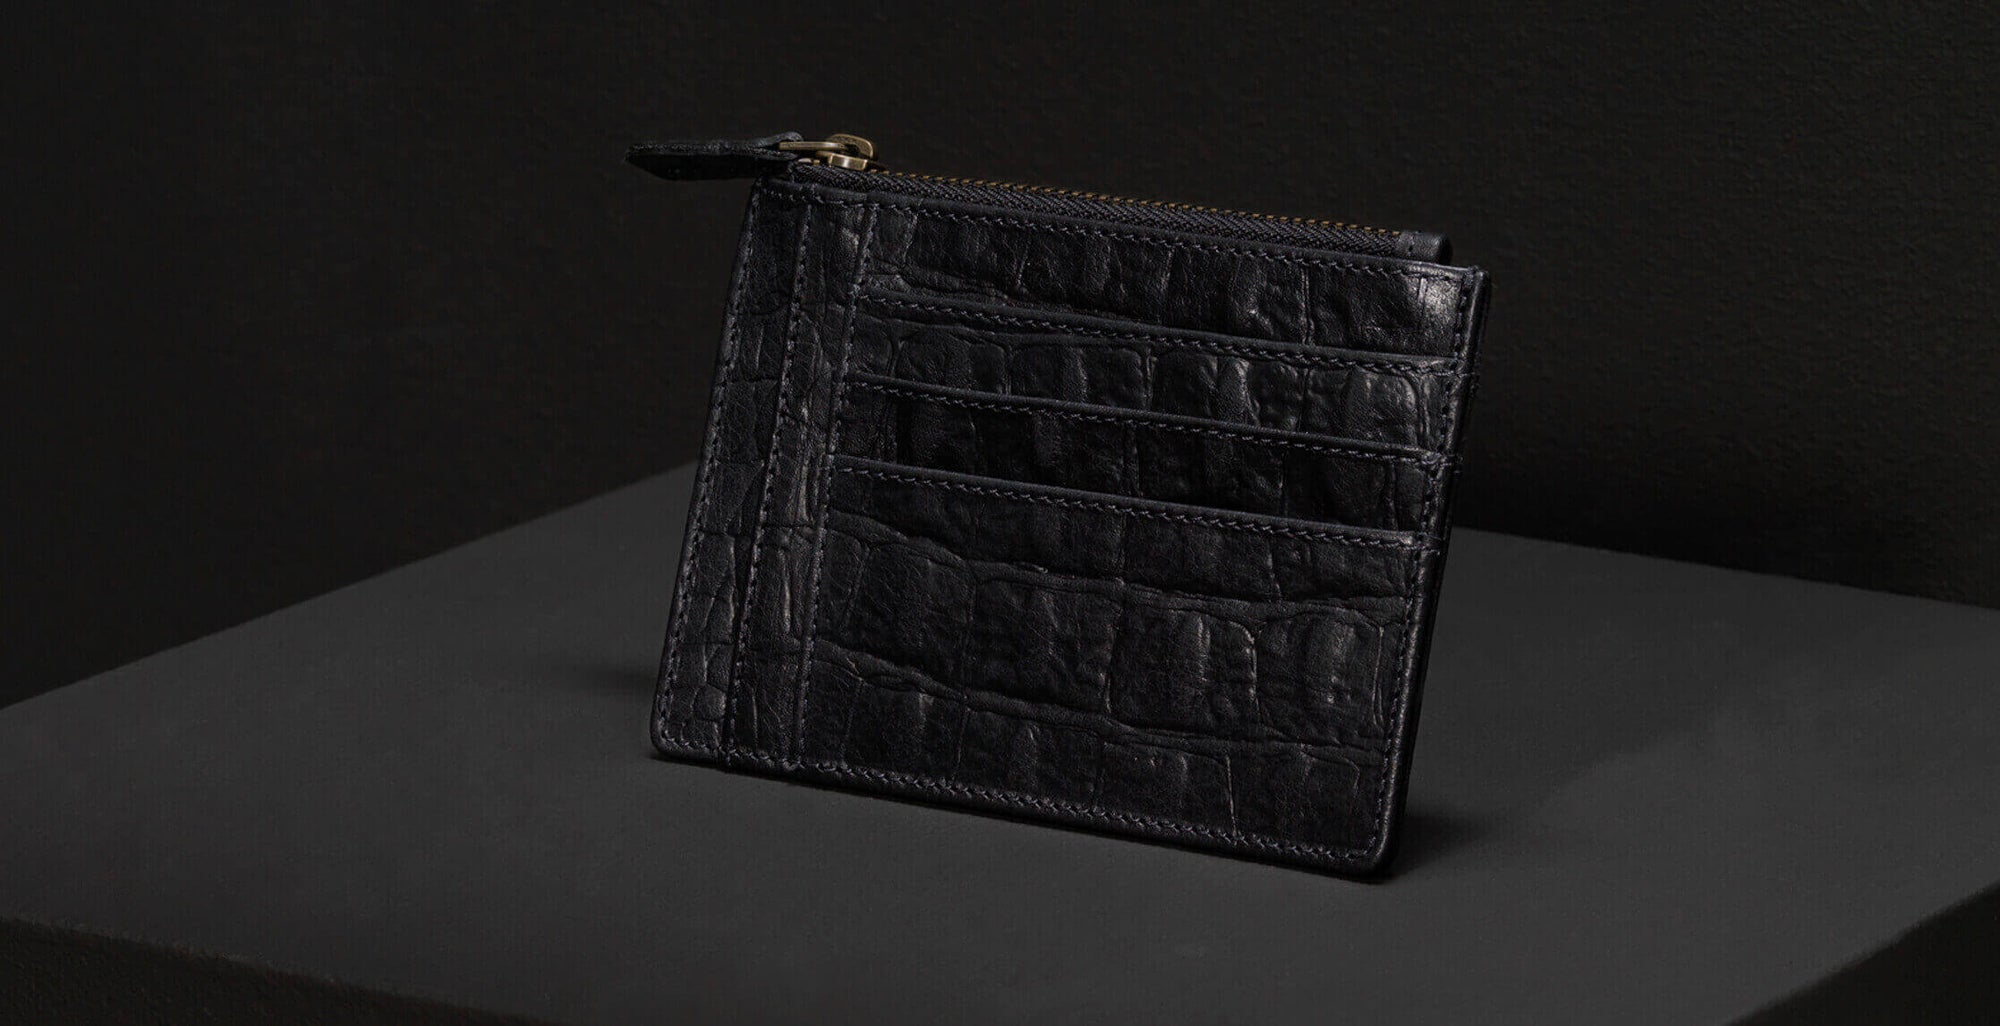 Leather wallet of black vegetable tanned leather with crocodile print